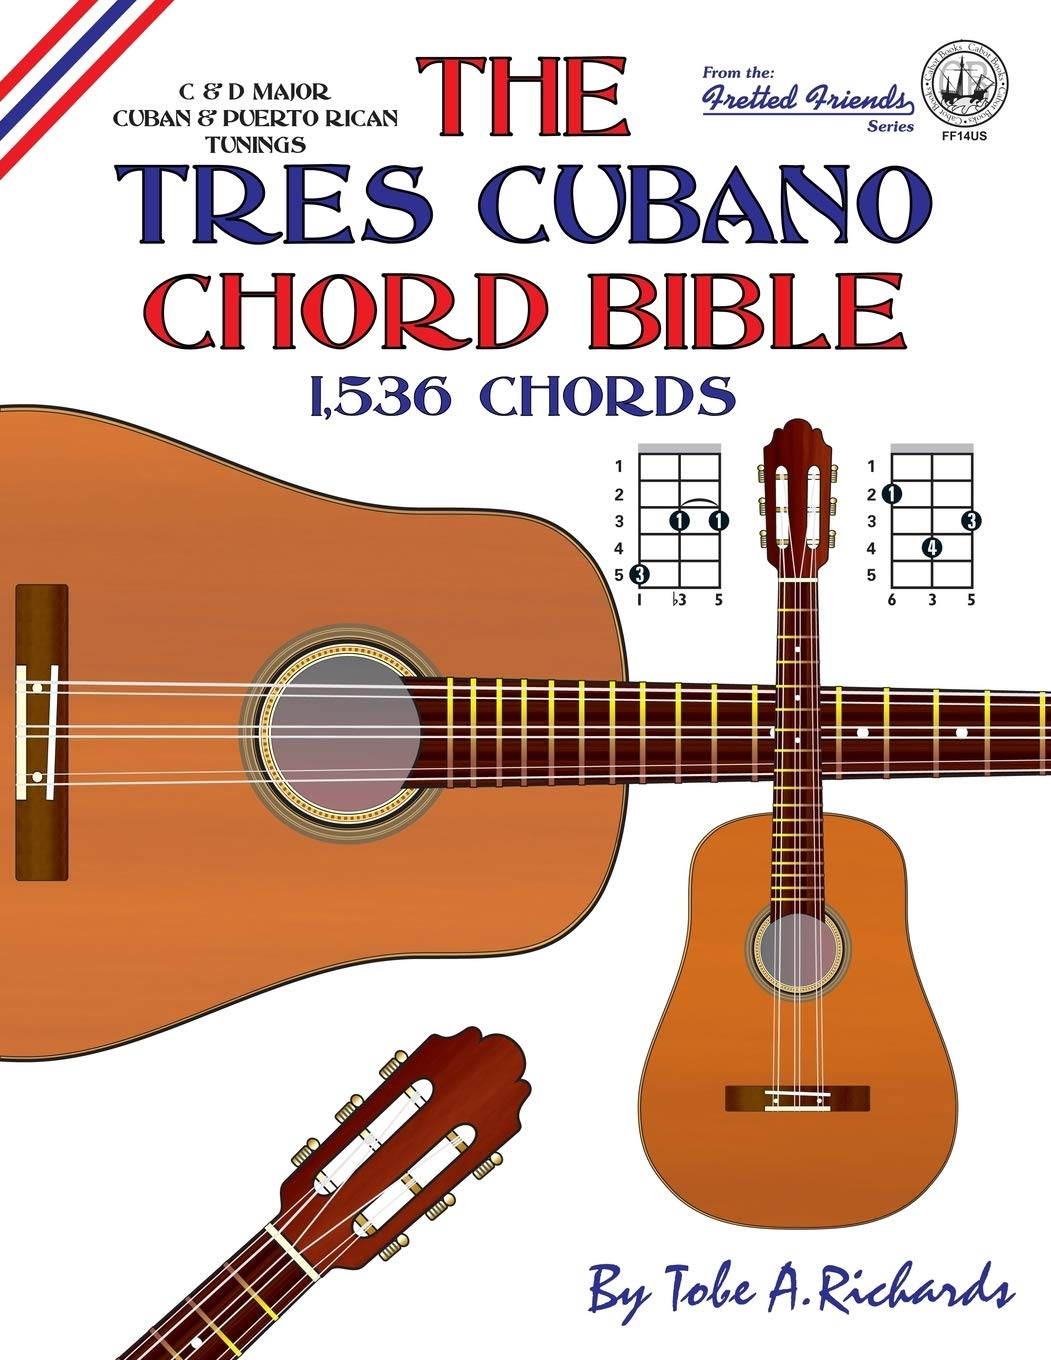 The Tres Cubano Chord Bible: C and D Major Cuban and Puerto ...